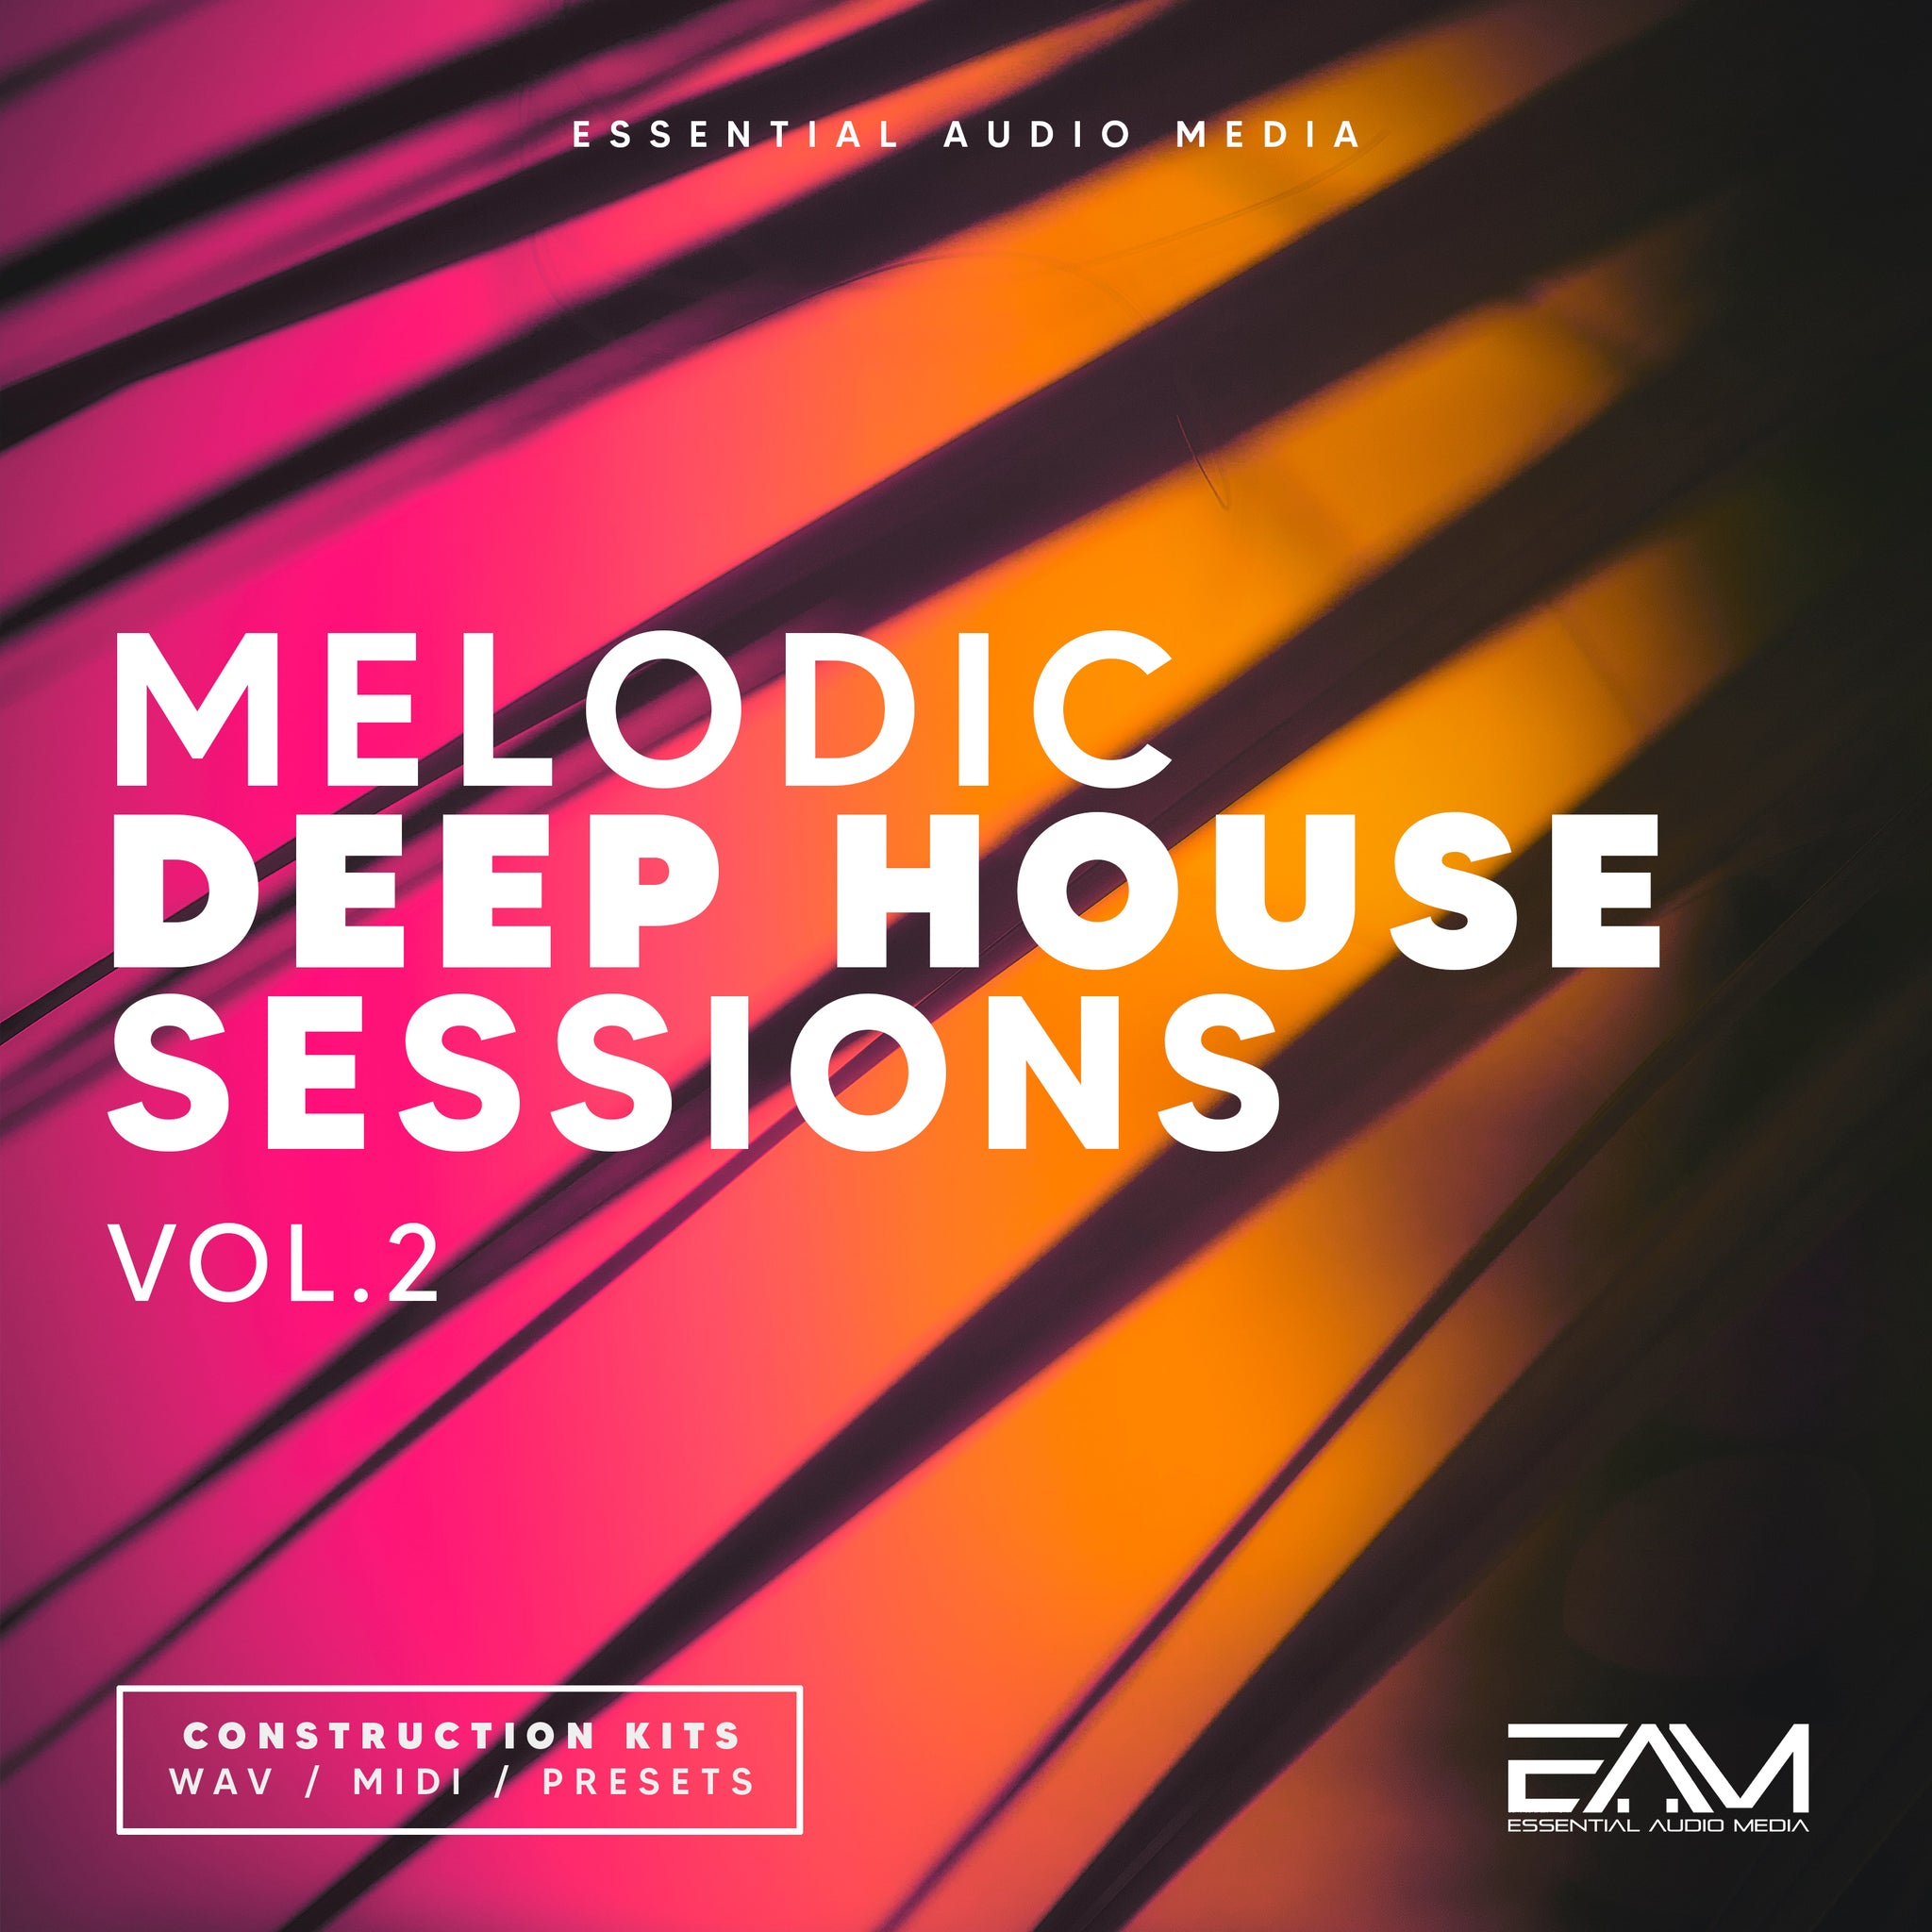 Melodic Deep House Sessions Vol.2